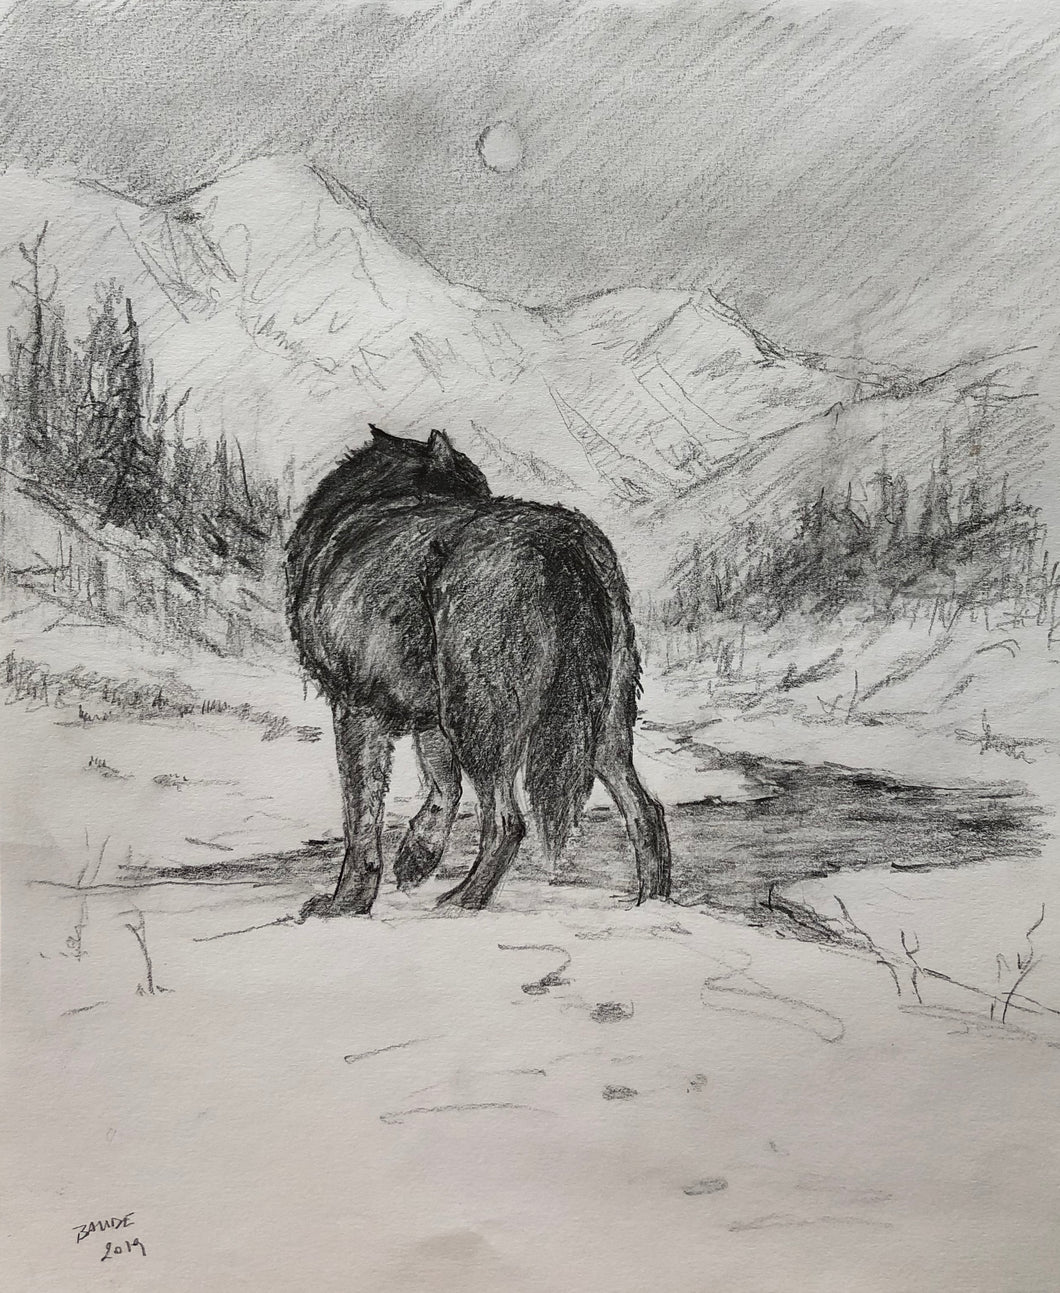 Original Drawing - Wolf in wilderness - 9.5x11